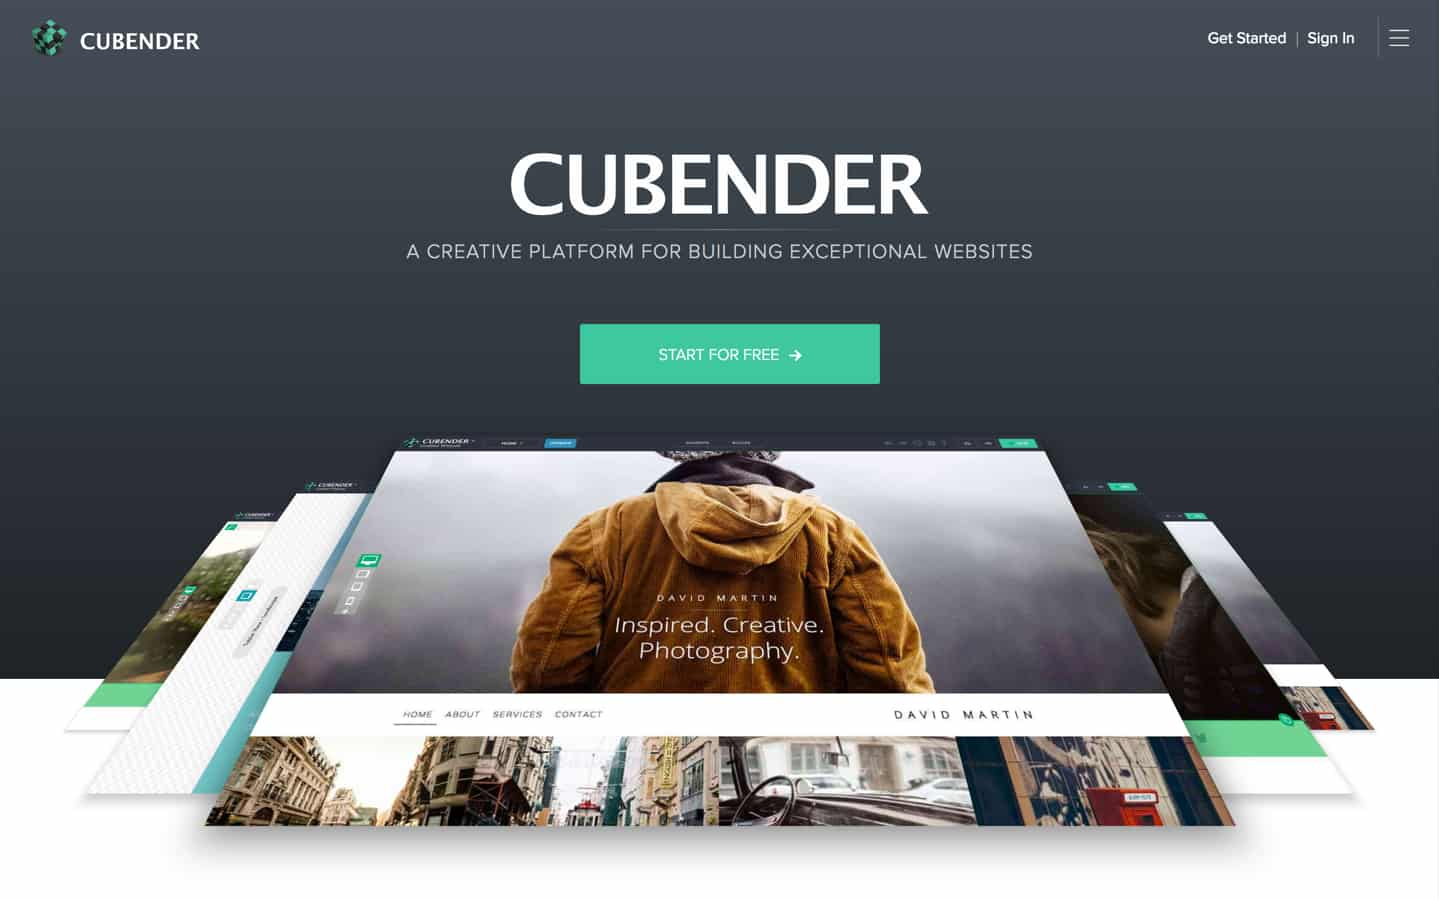 cubender review